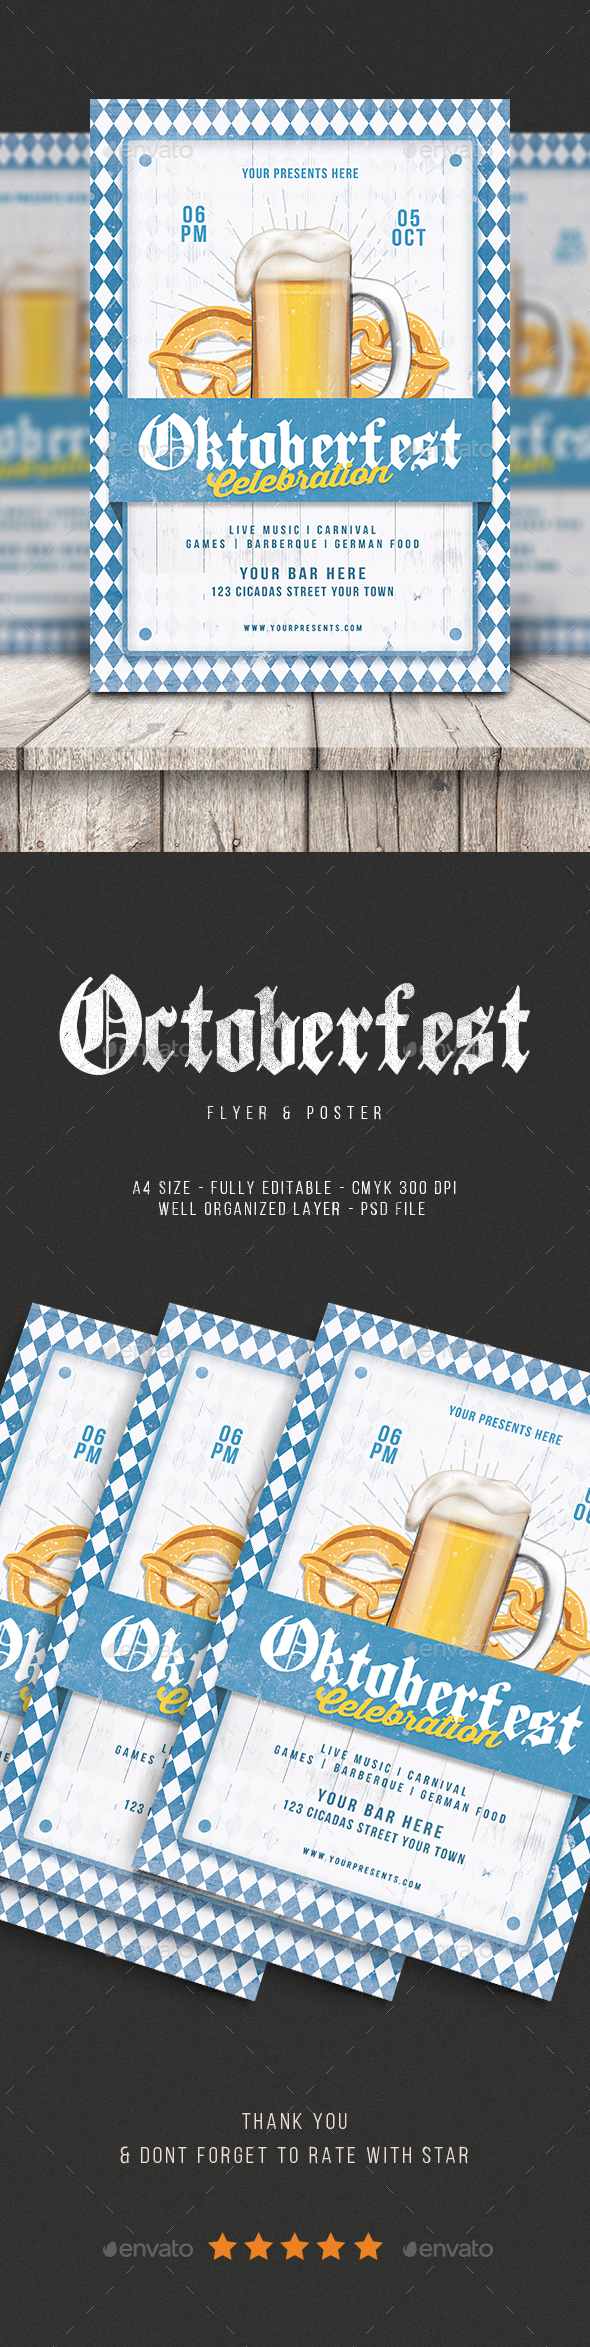 GraphicRiver Oktoberfest Flyer vol.4 20650548